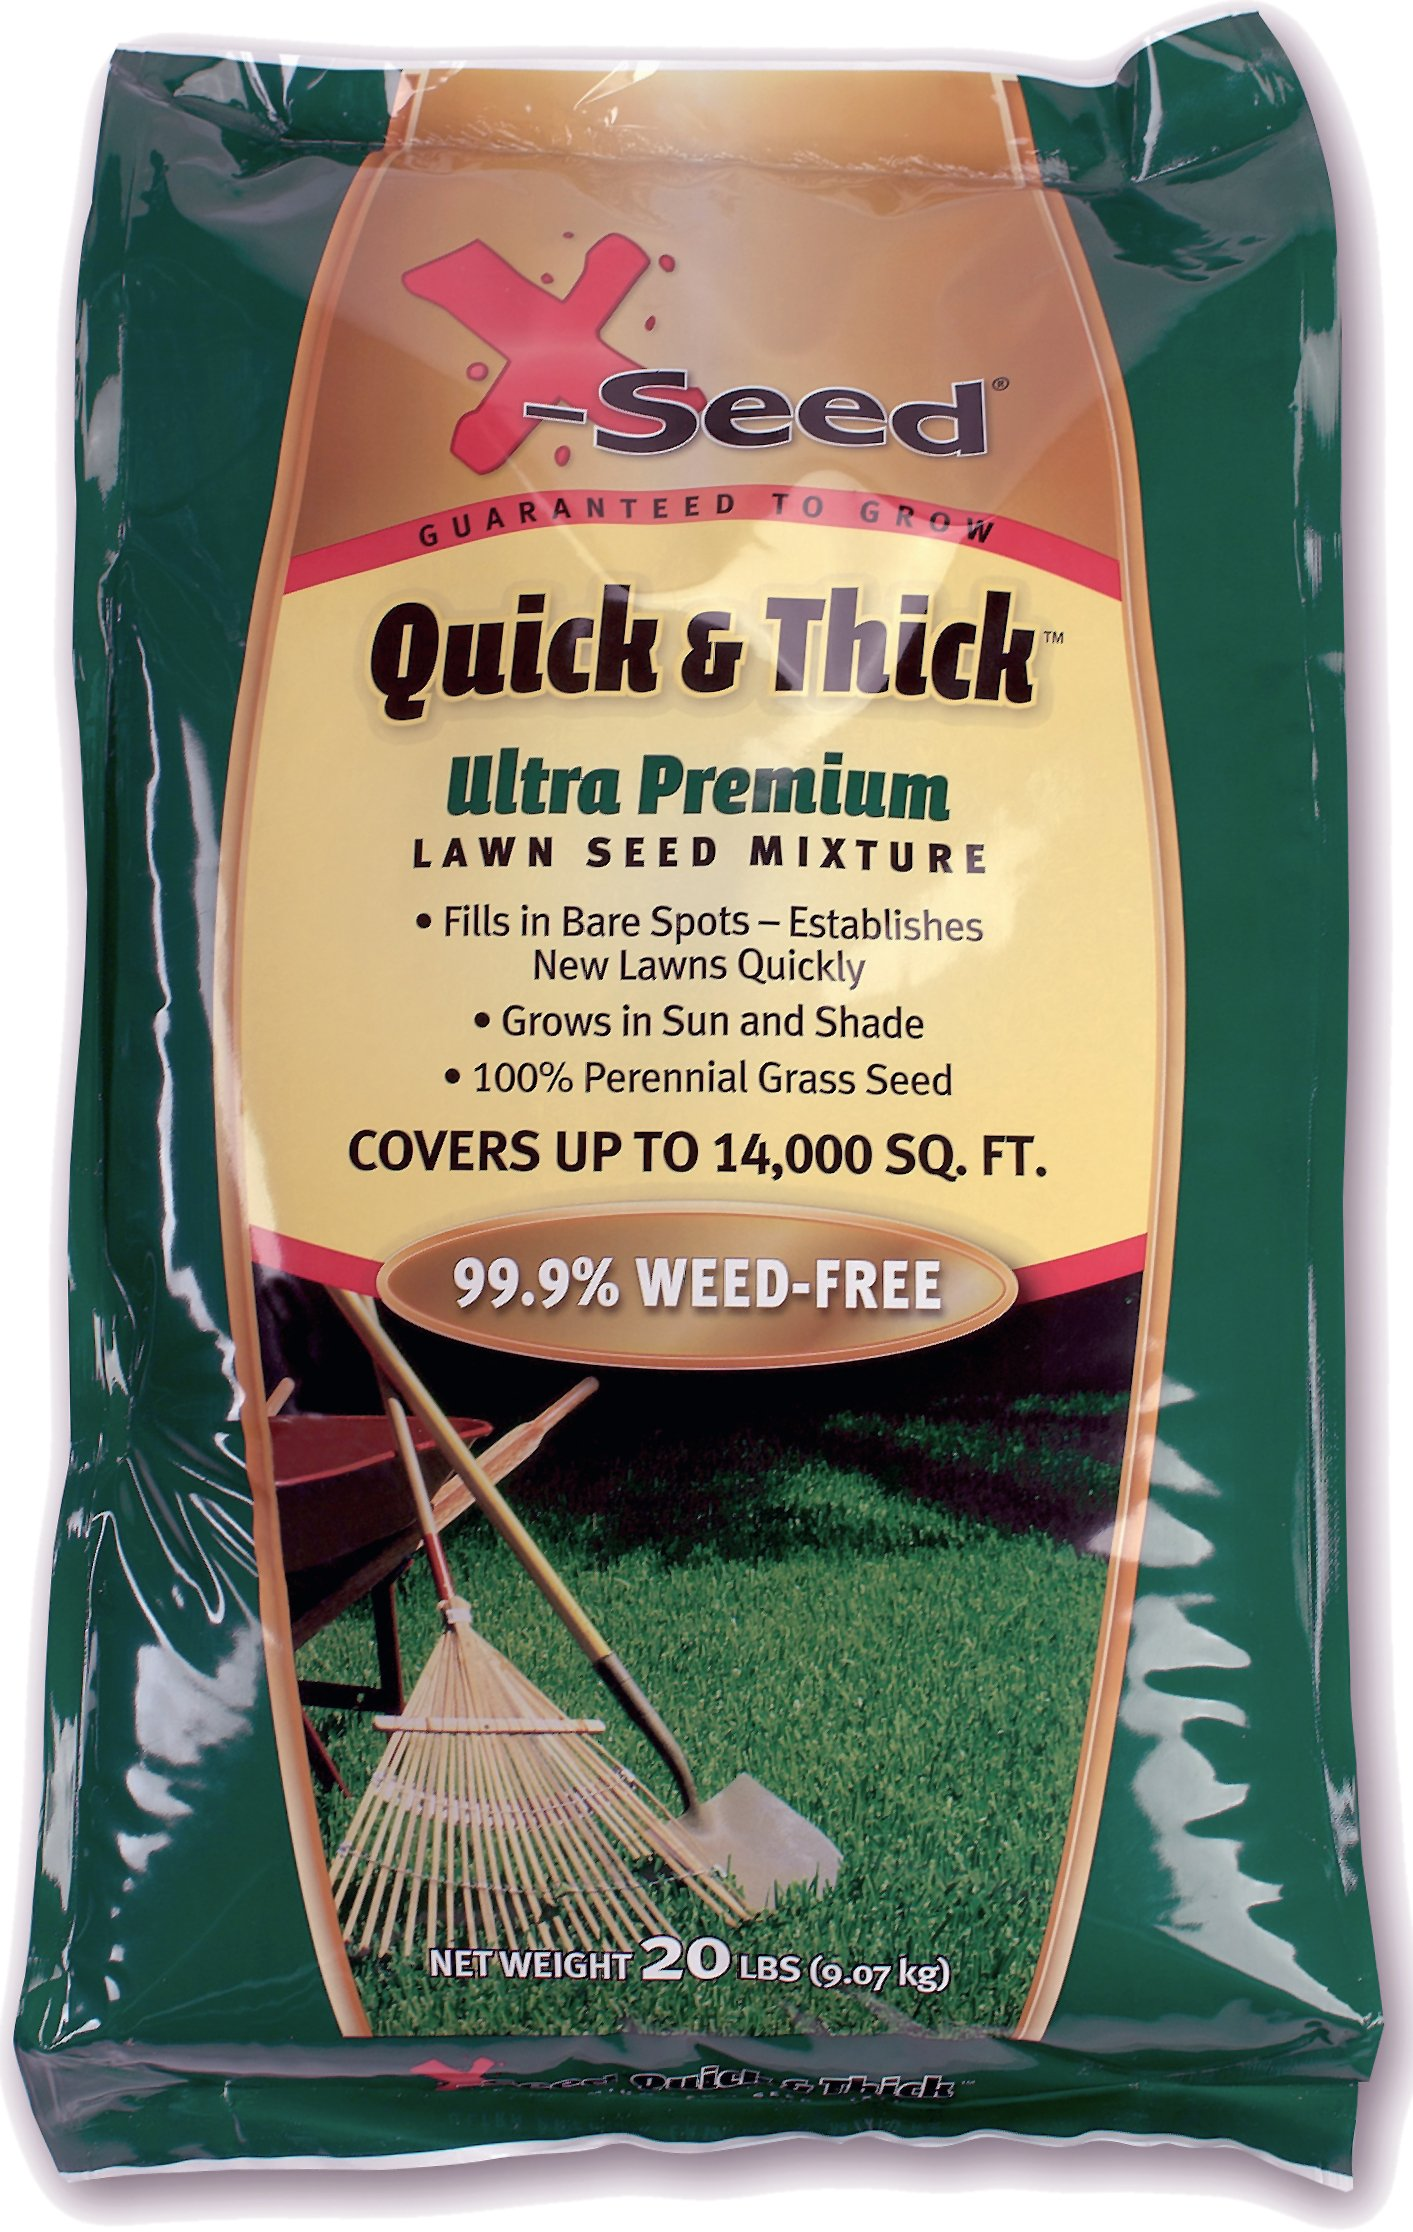 X-Seed Ultra Premium Quick and Thick Lawn Seed Mixture, 20-Pound by X-Seed (Image #1)